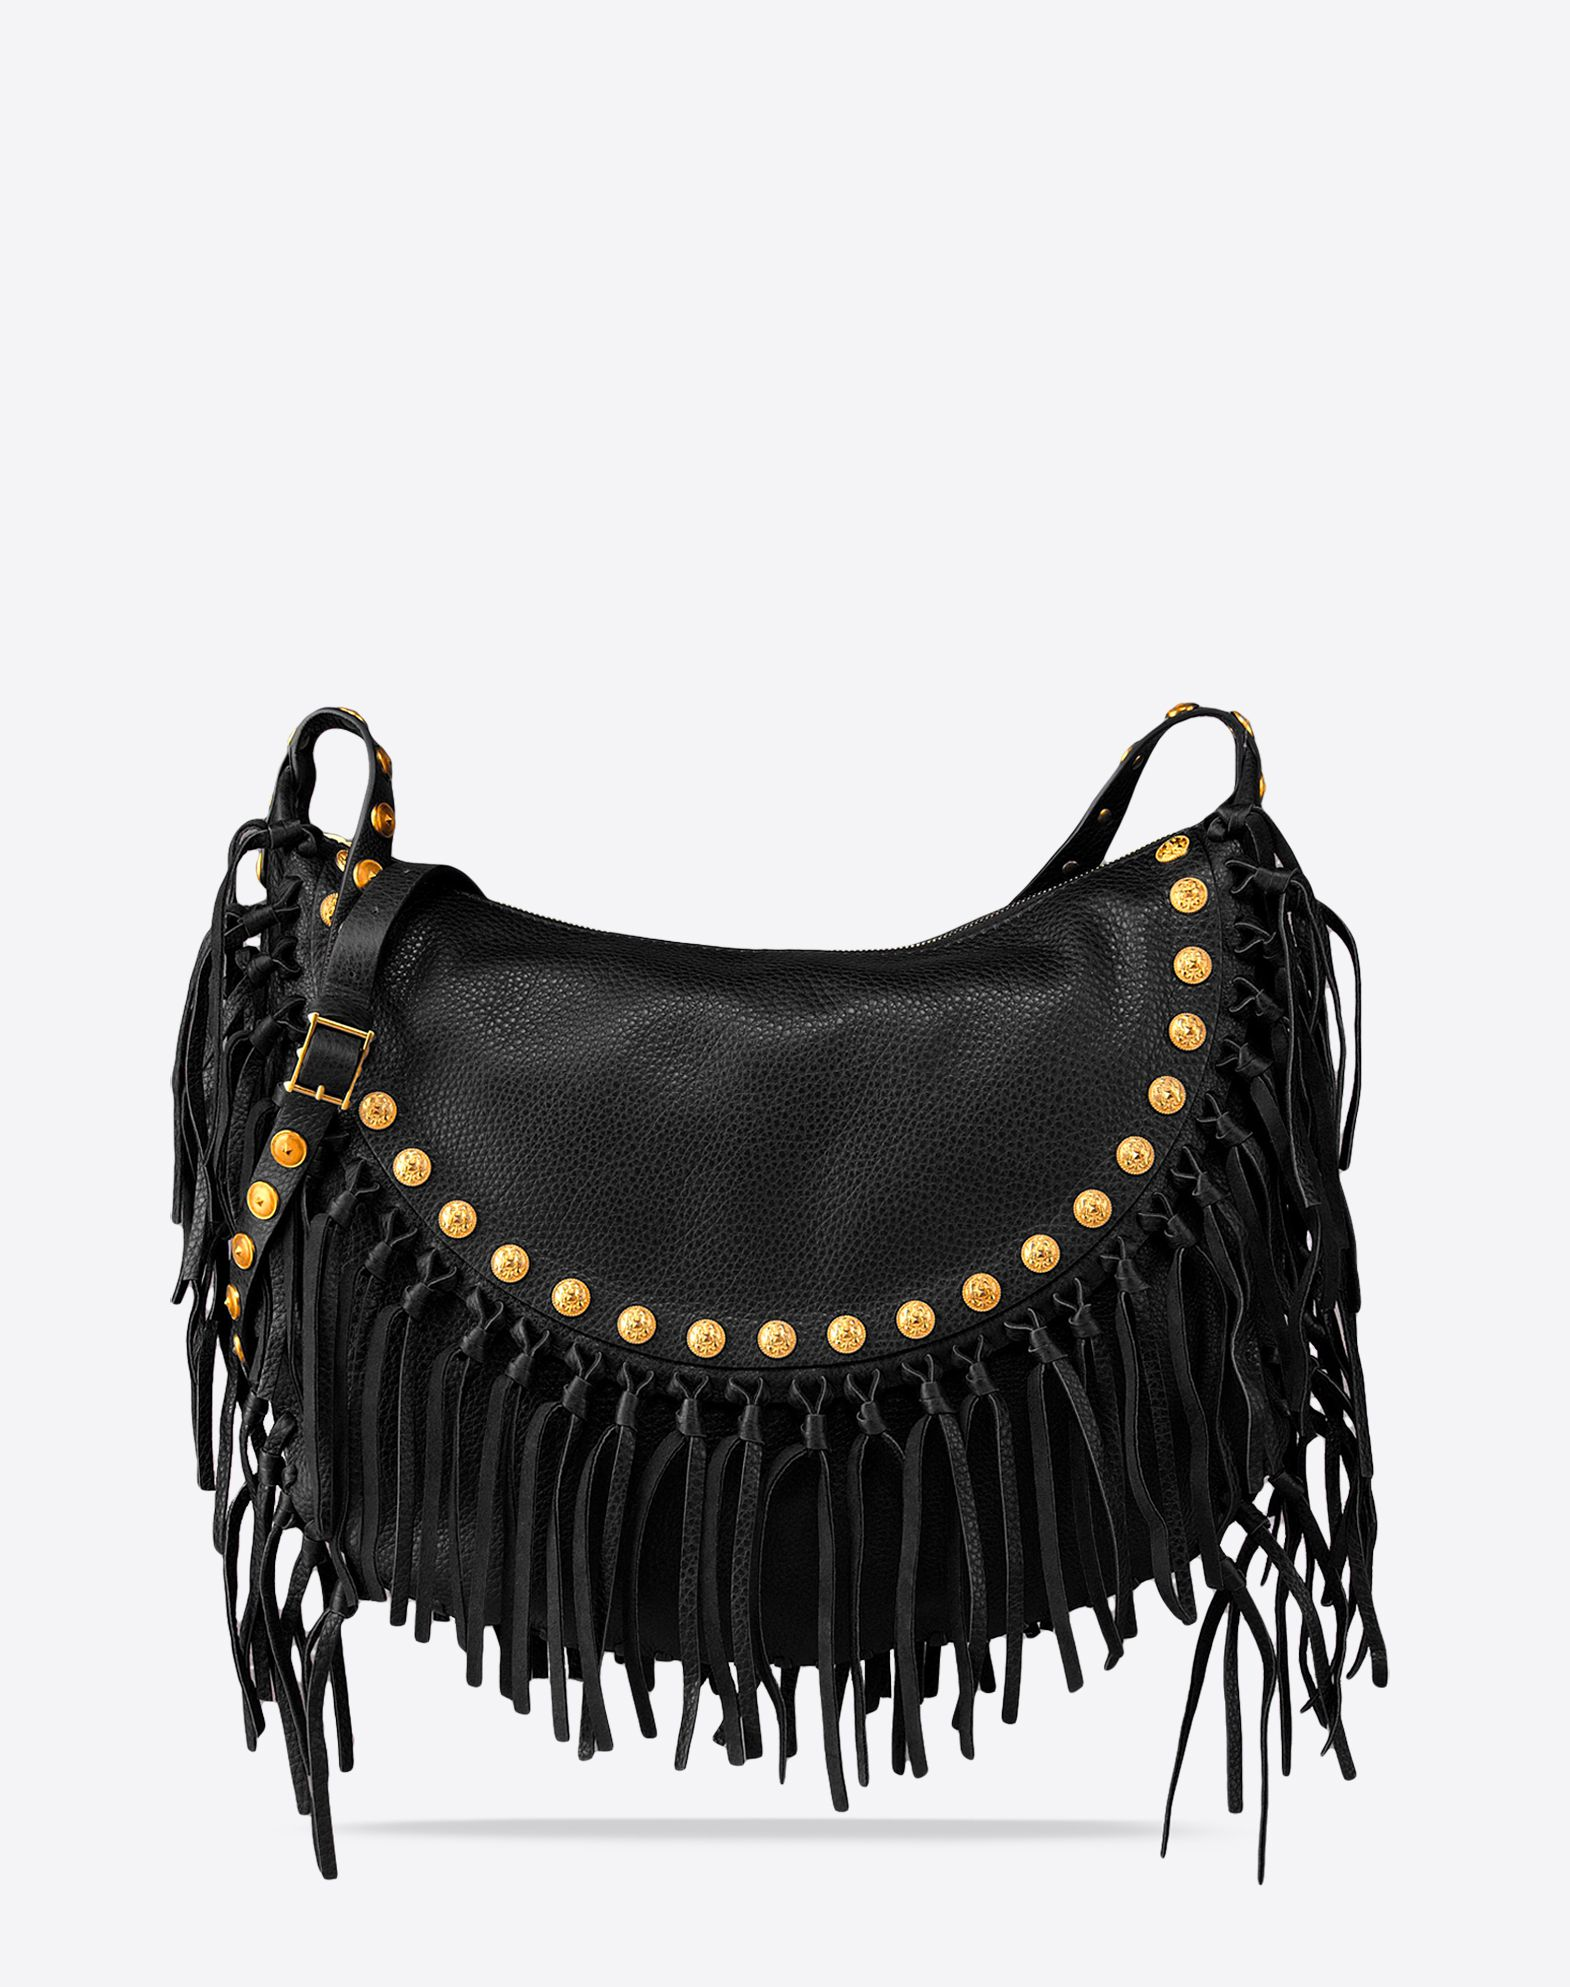 VALENTINO Logo detail Fringe Metal Applications Textured leather Solid color Zip closure Internal pockets Adjustable shoulder straps  45237719na